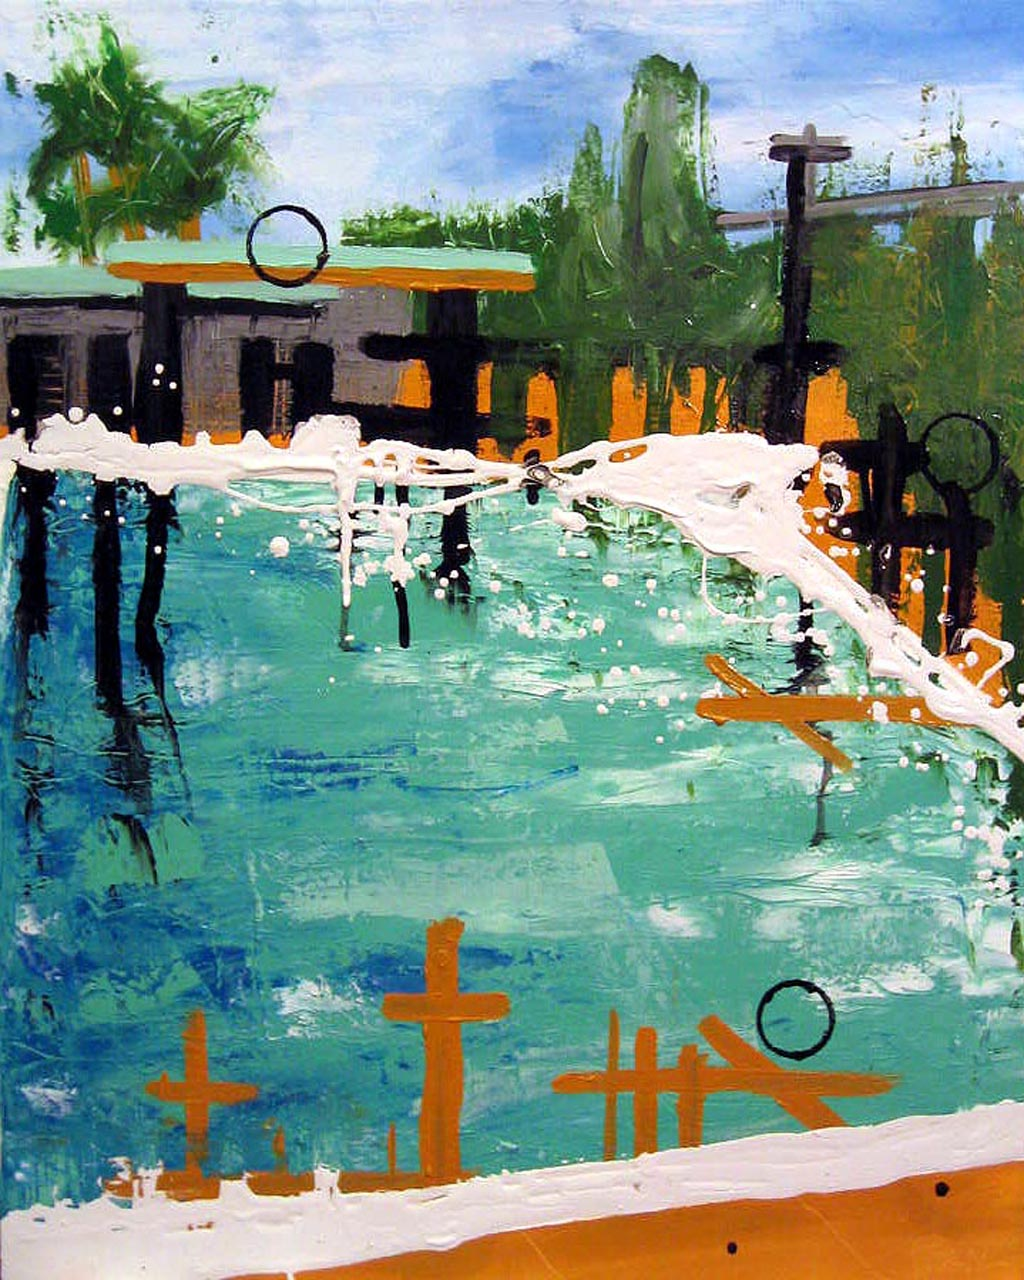 By the Pool, 2005, Oil on canvas, 24 x 46 inches